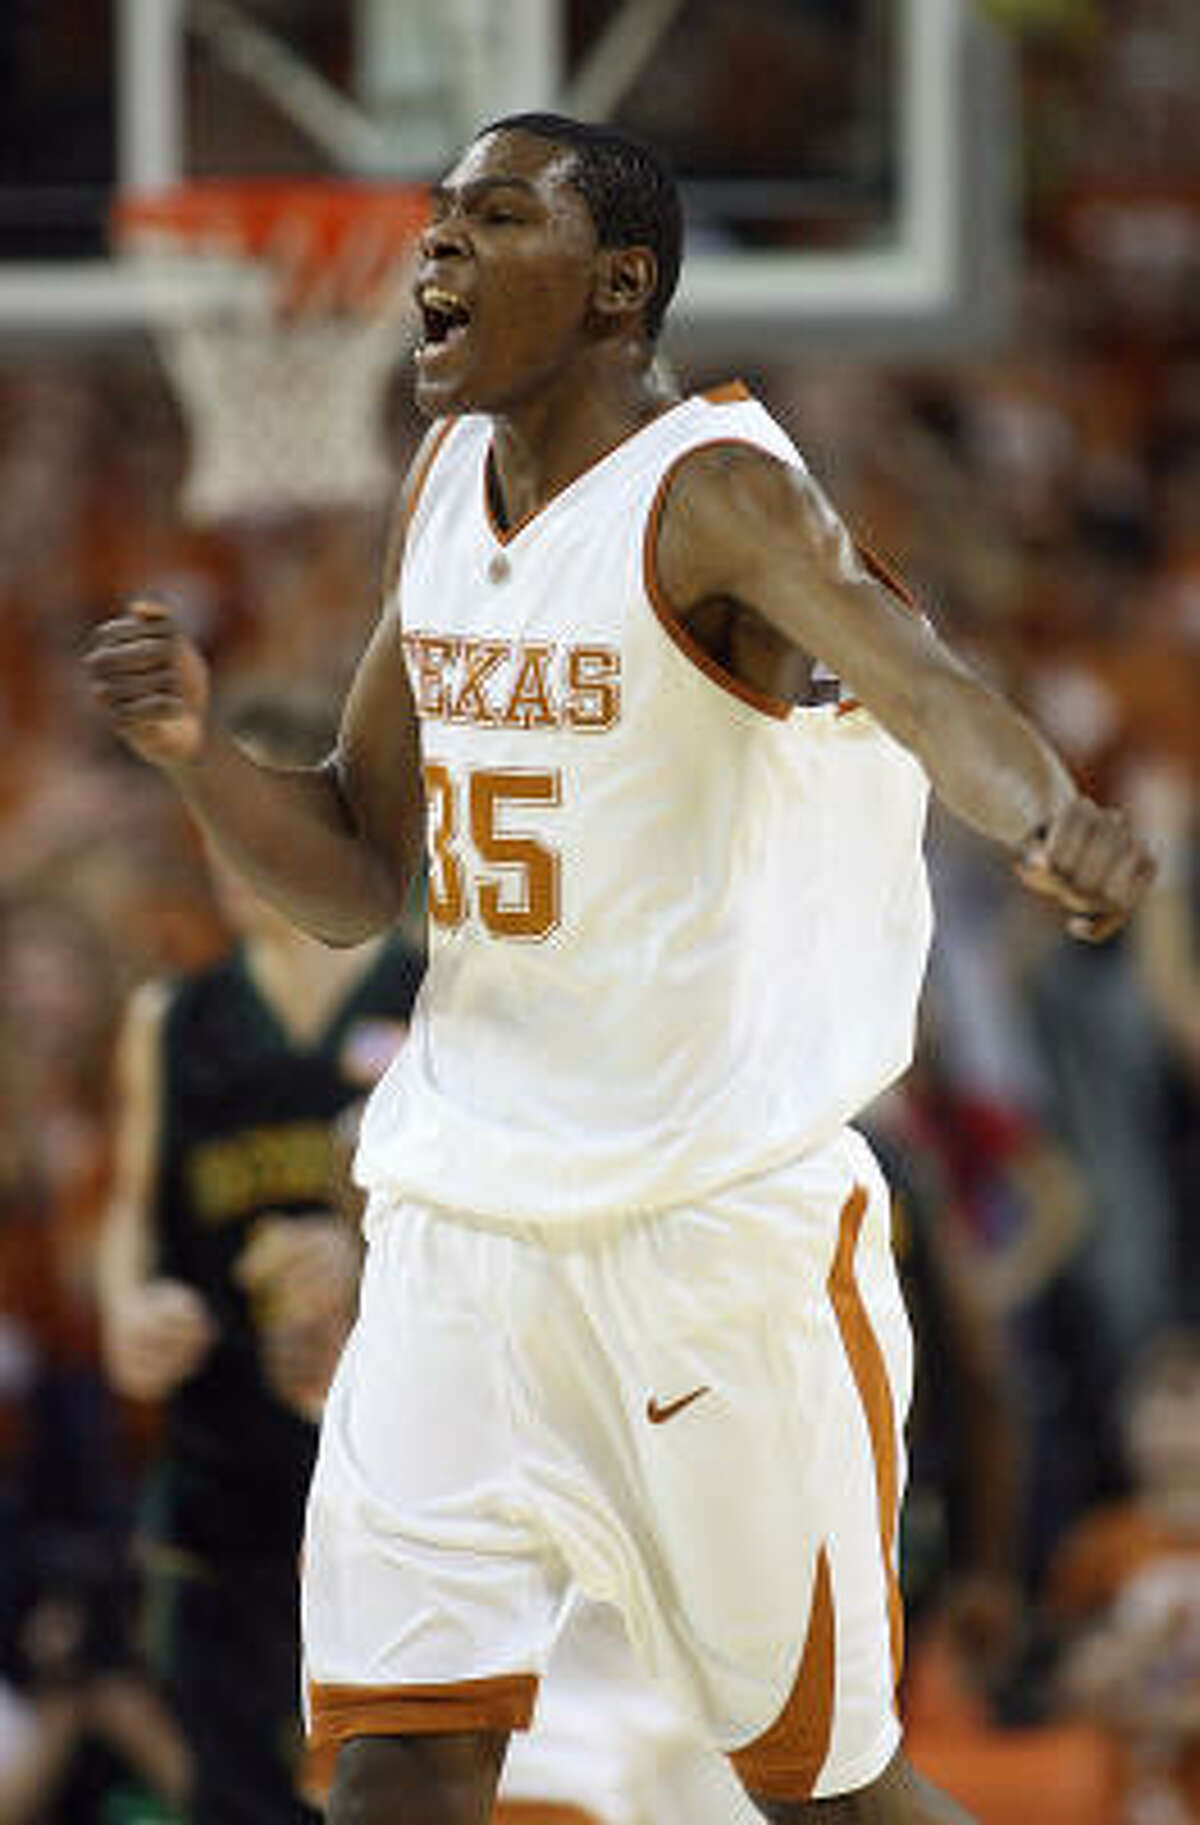 Kevin Durant had 34 points in the Longhorns' 84-79 victory over Baylor.